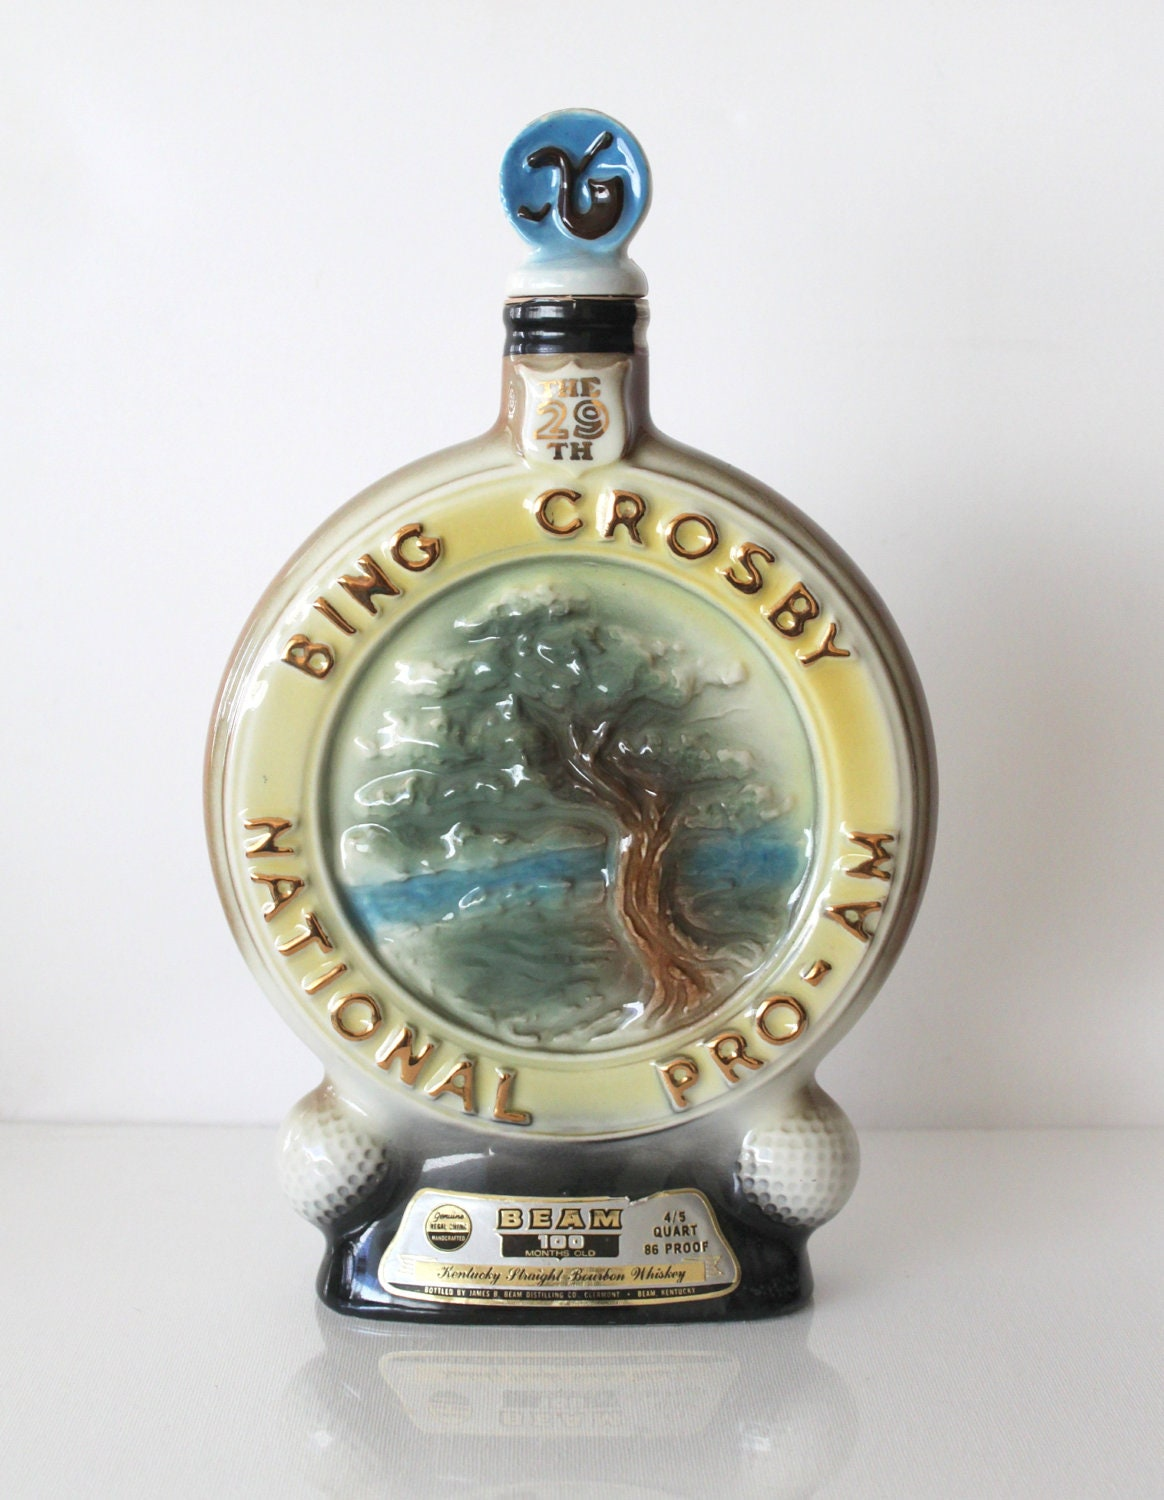 Vintage Bing Crosby Jim Beam Collectible Liquor Bottle By